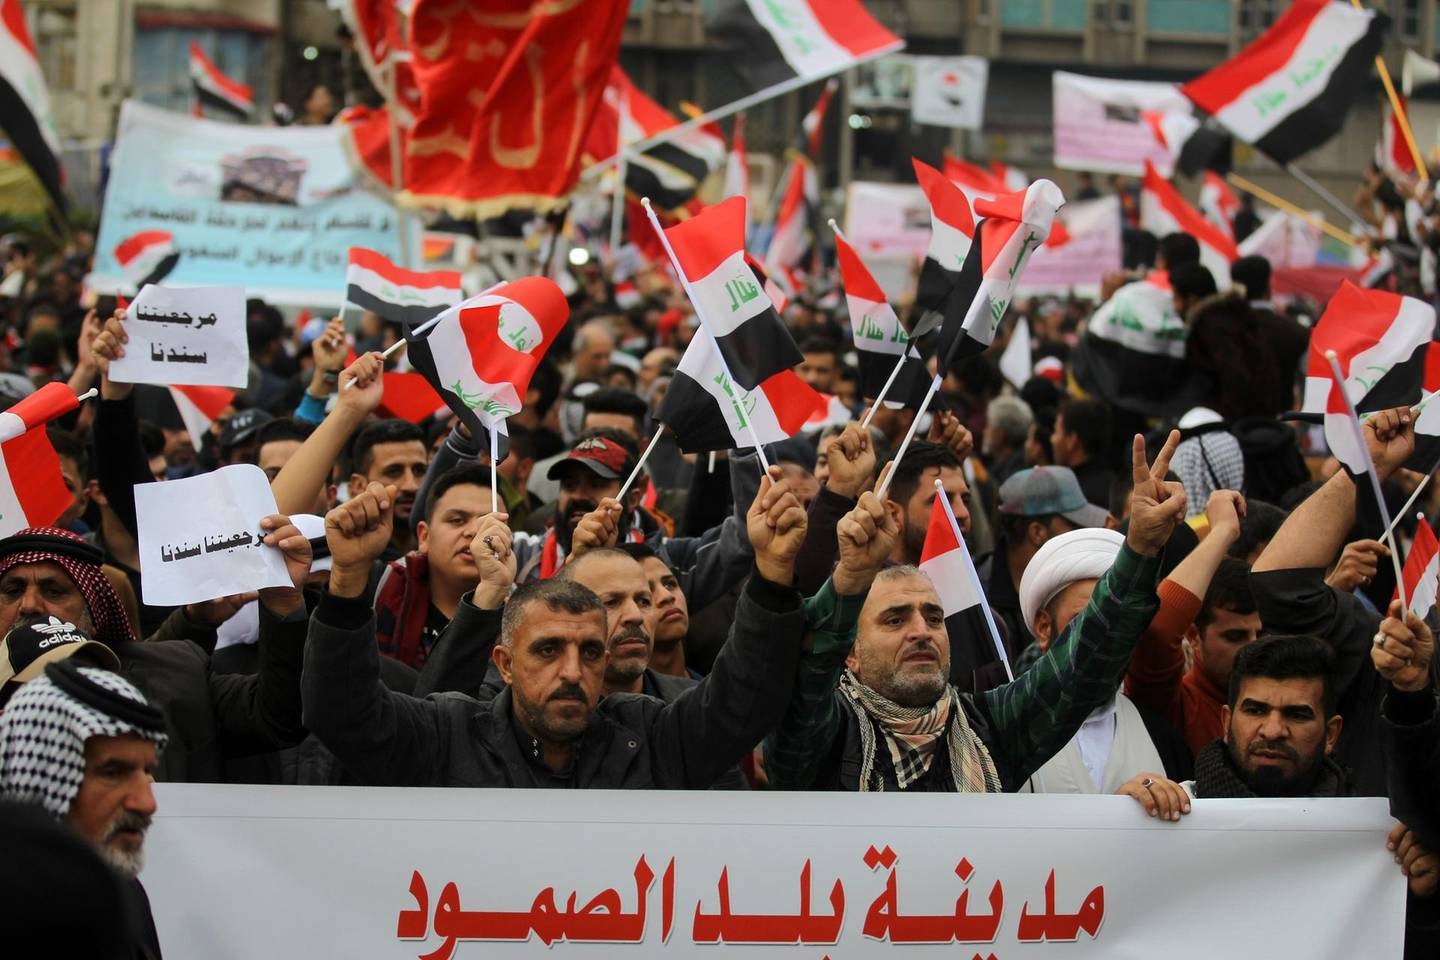 Iraqi demonstrators wave national flags as the take part in an anti-govenment demonstration in the capital Baghdad's Tahrir Square, on December 6, 2019.  Tahrir has become a melting pot of Iraqi society, occupied day and night by thousands of demonstrators angry with the political system in place since the aftermath of the US-led invasion of 2003 and Iran's role in propping it up. / AFP / AHMAD AL-RUBAYE